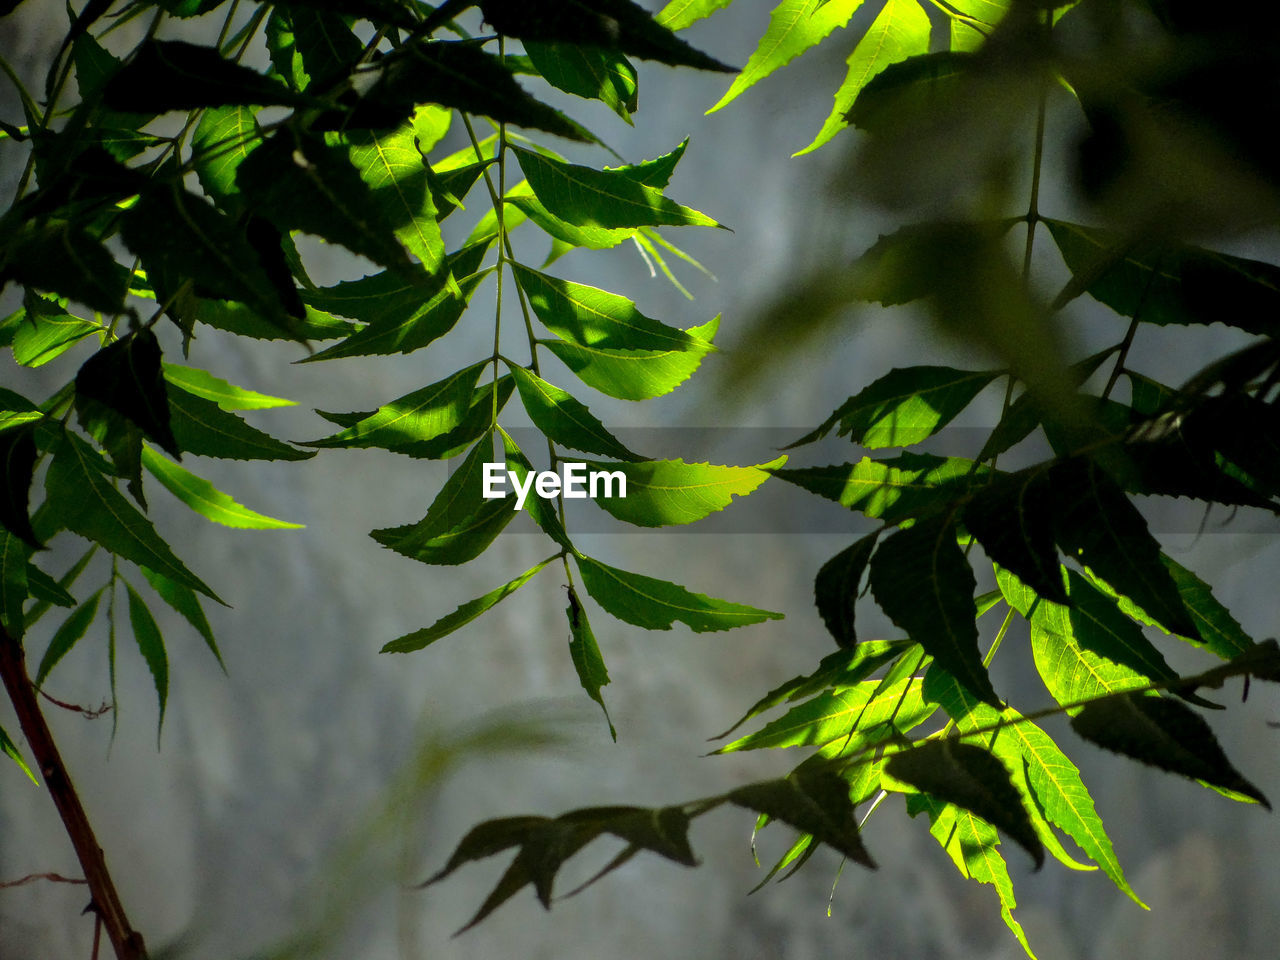 Close-up of  neem leaves against blurred background